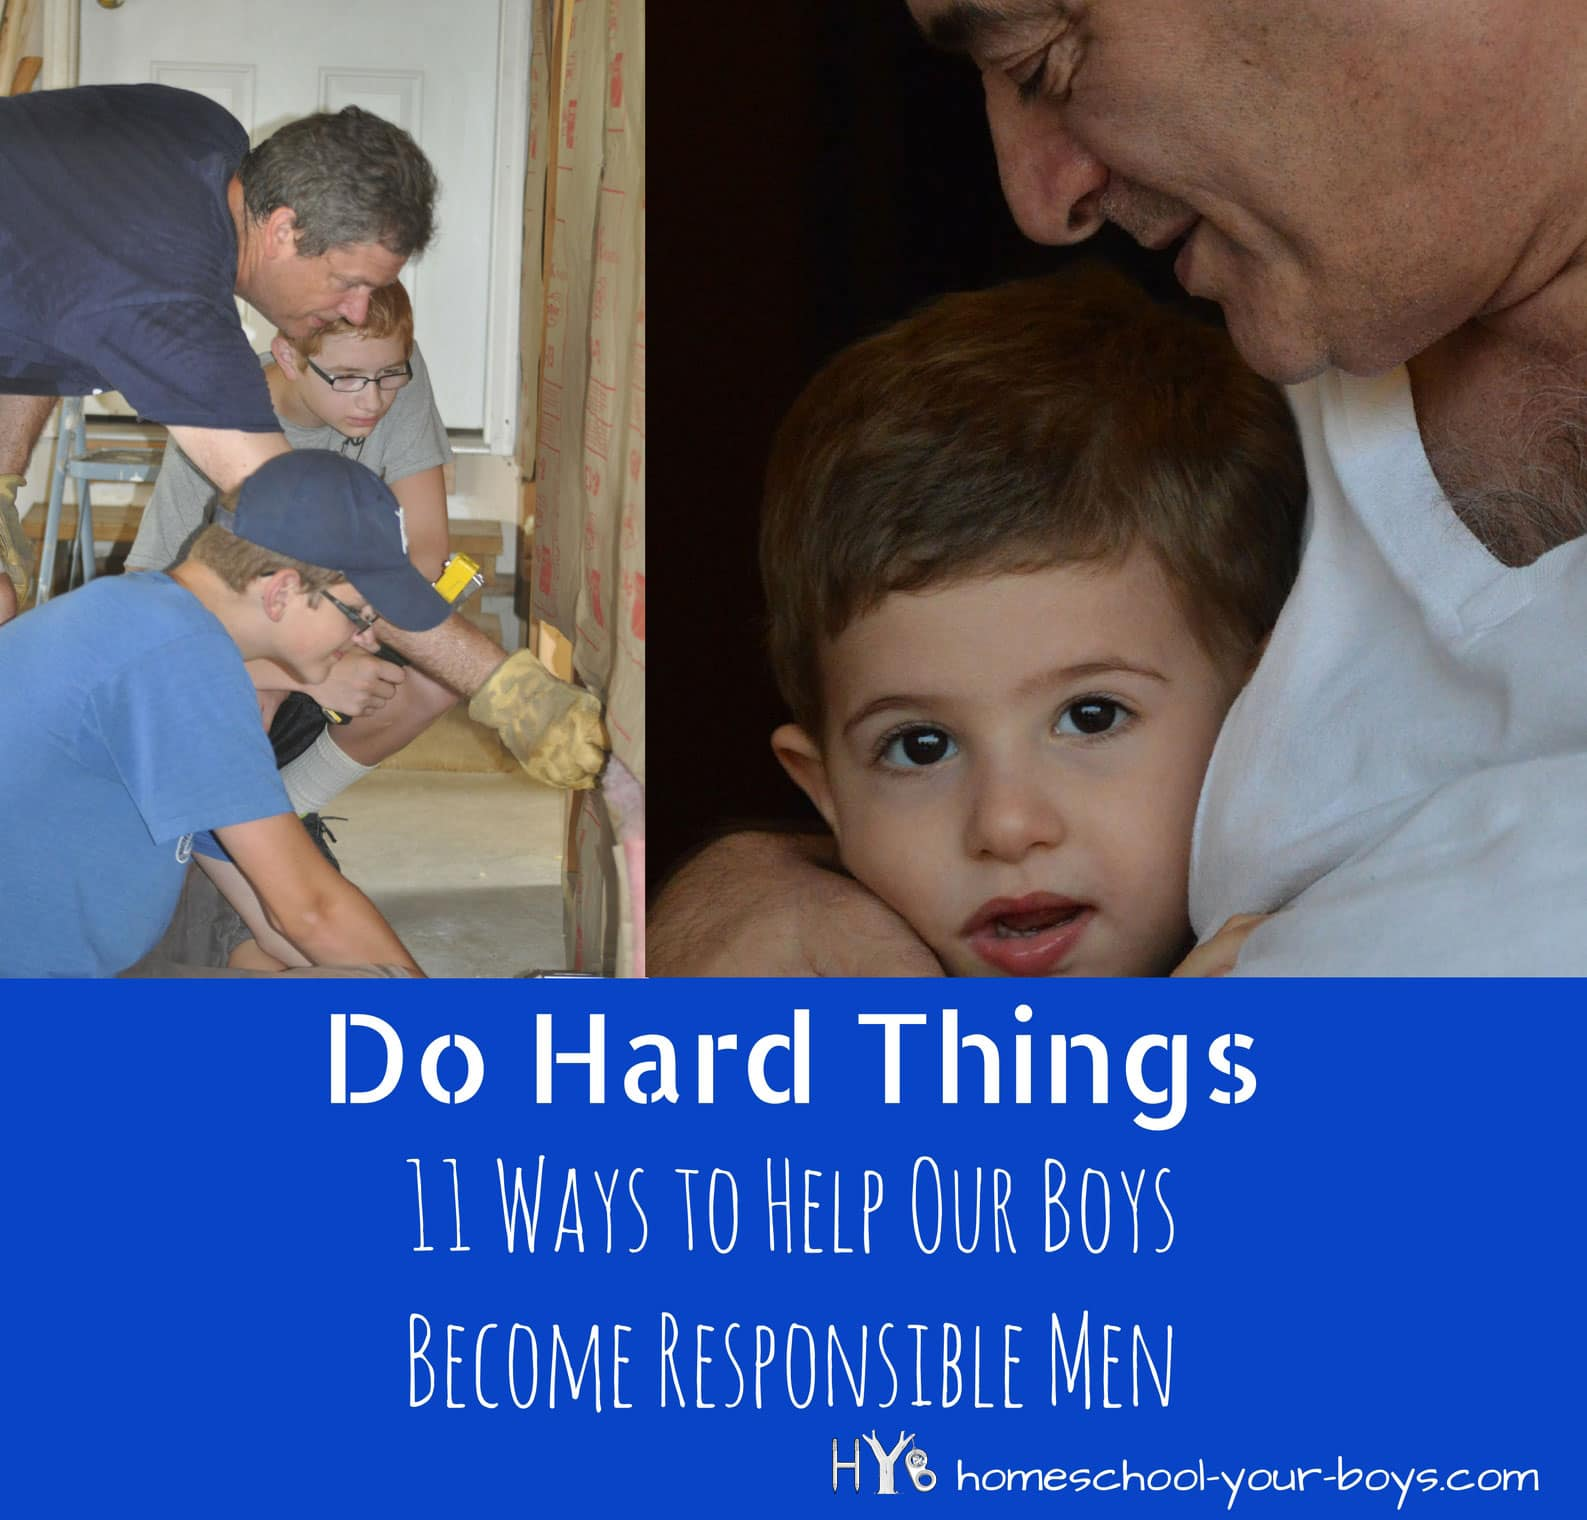 Do Hard Things – 11 Ways to Help Our Boys Become Responsible Men